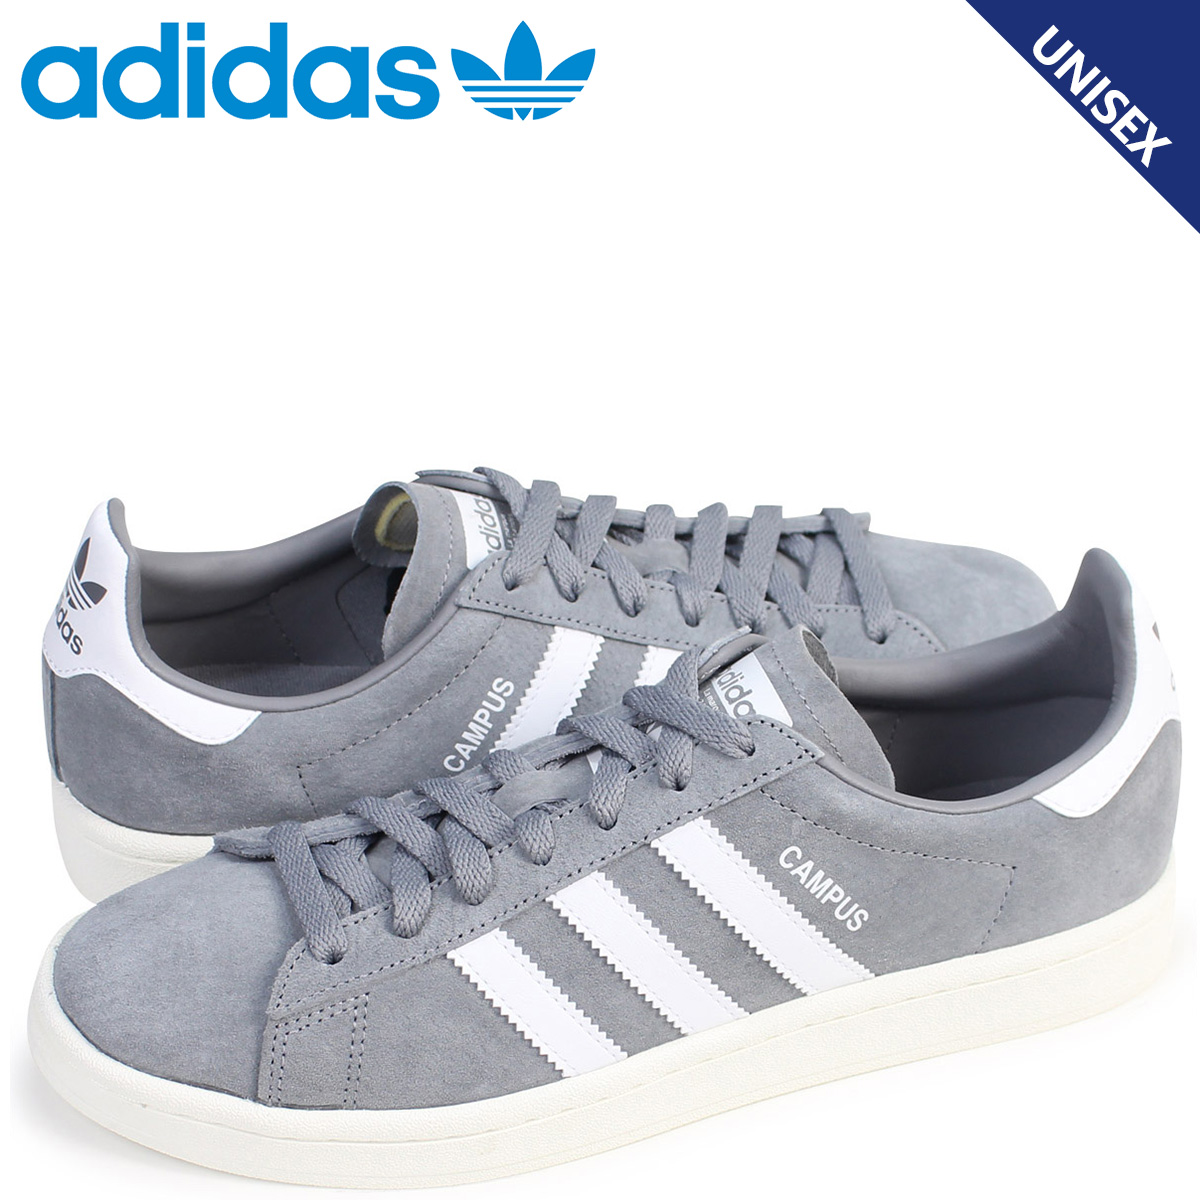 adidas country Men's Shoes Shoes include sold out